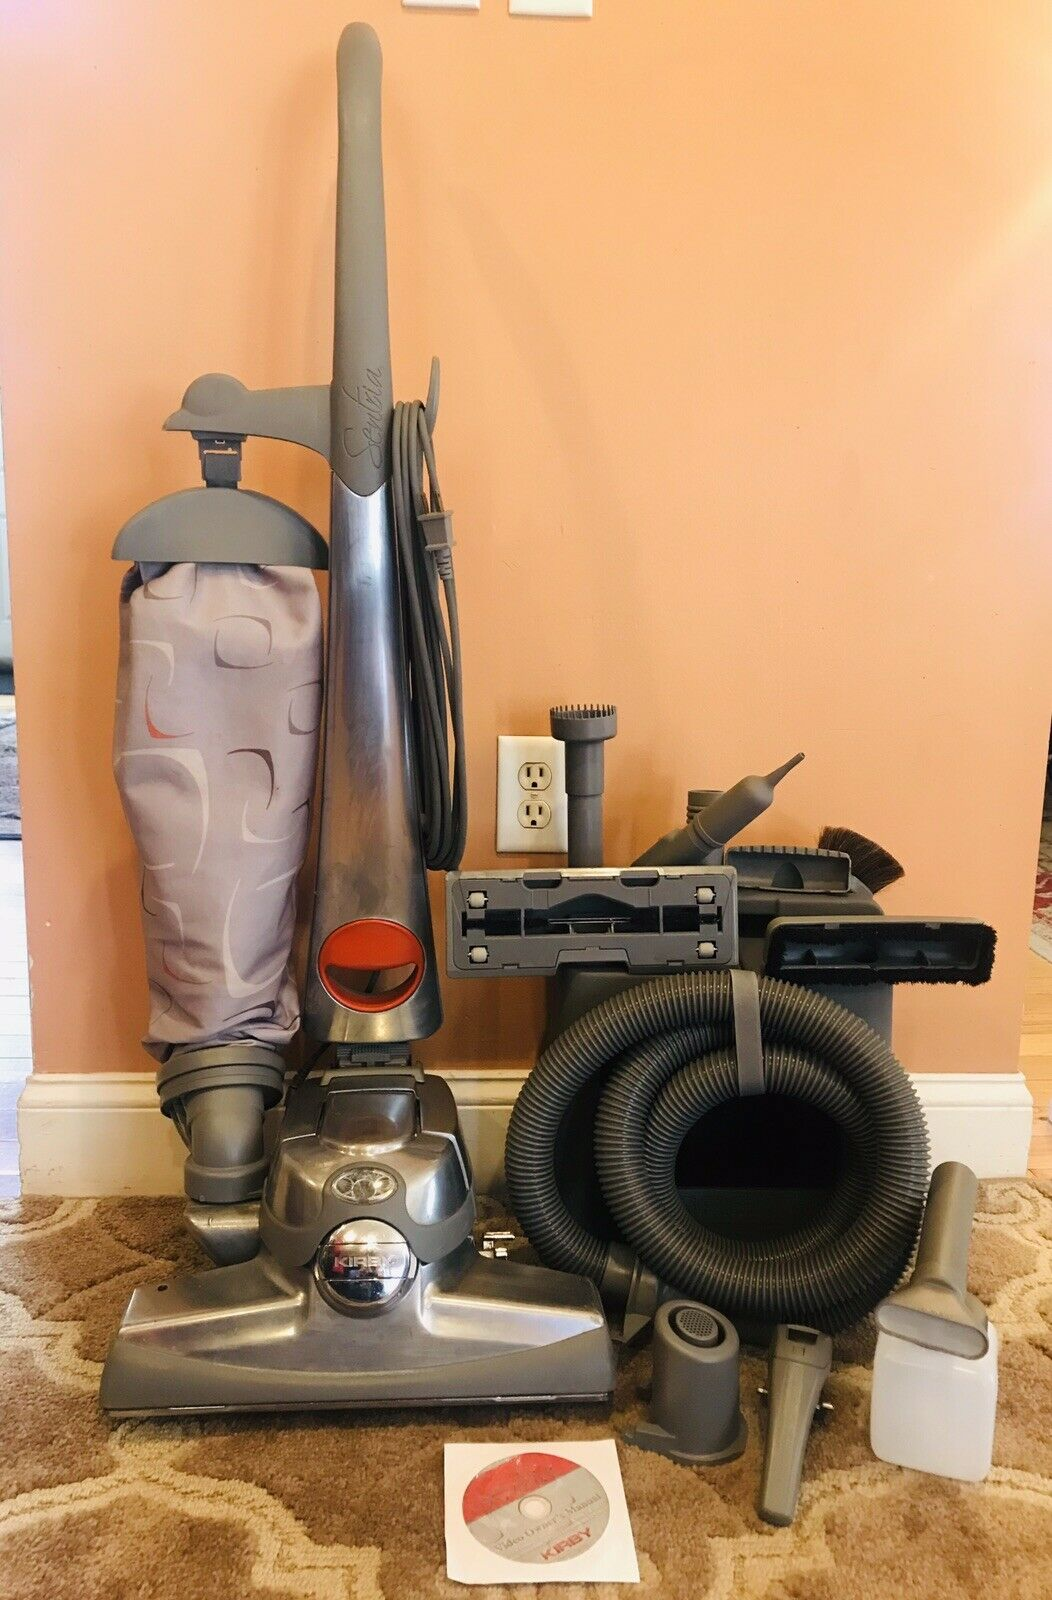 Kirby Sentria Bagged Upright Vacuum Cleaner w  Complete Attachment Set